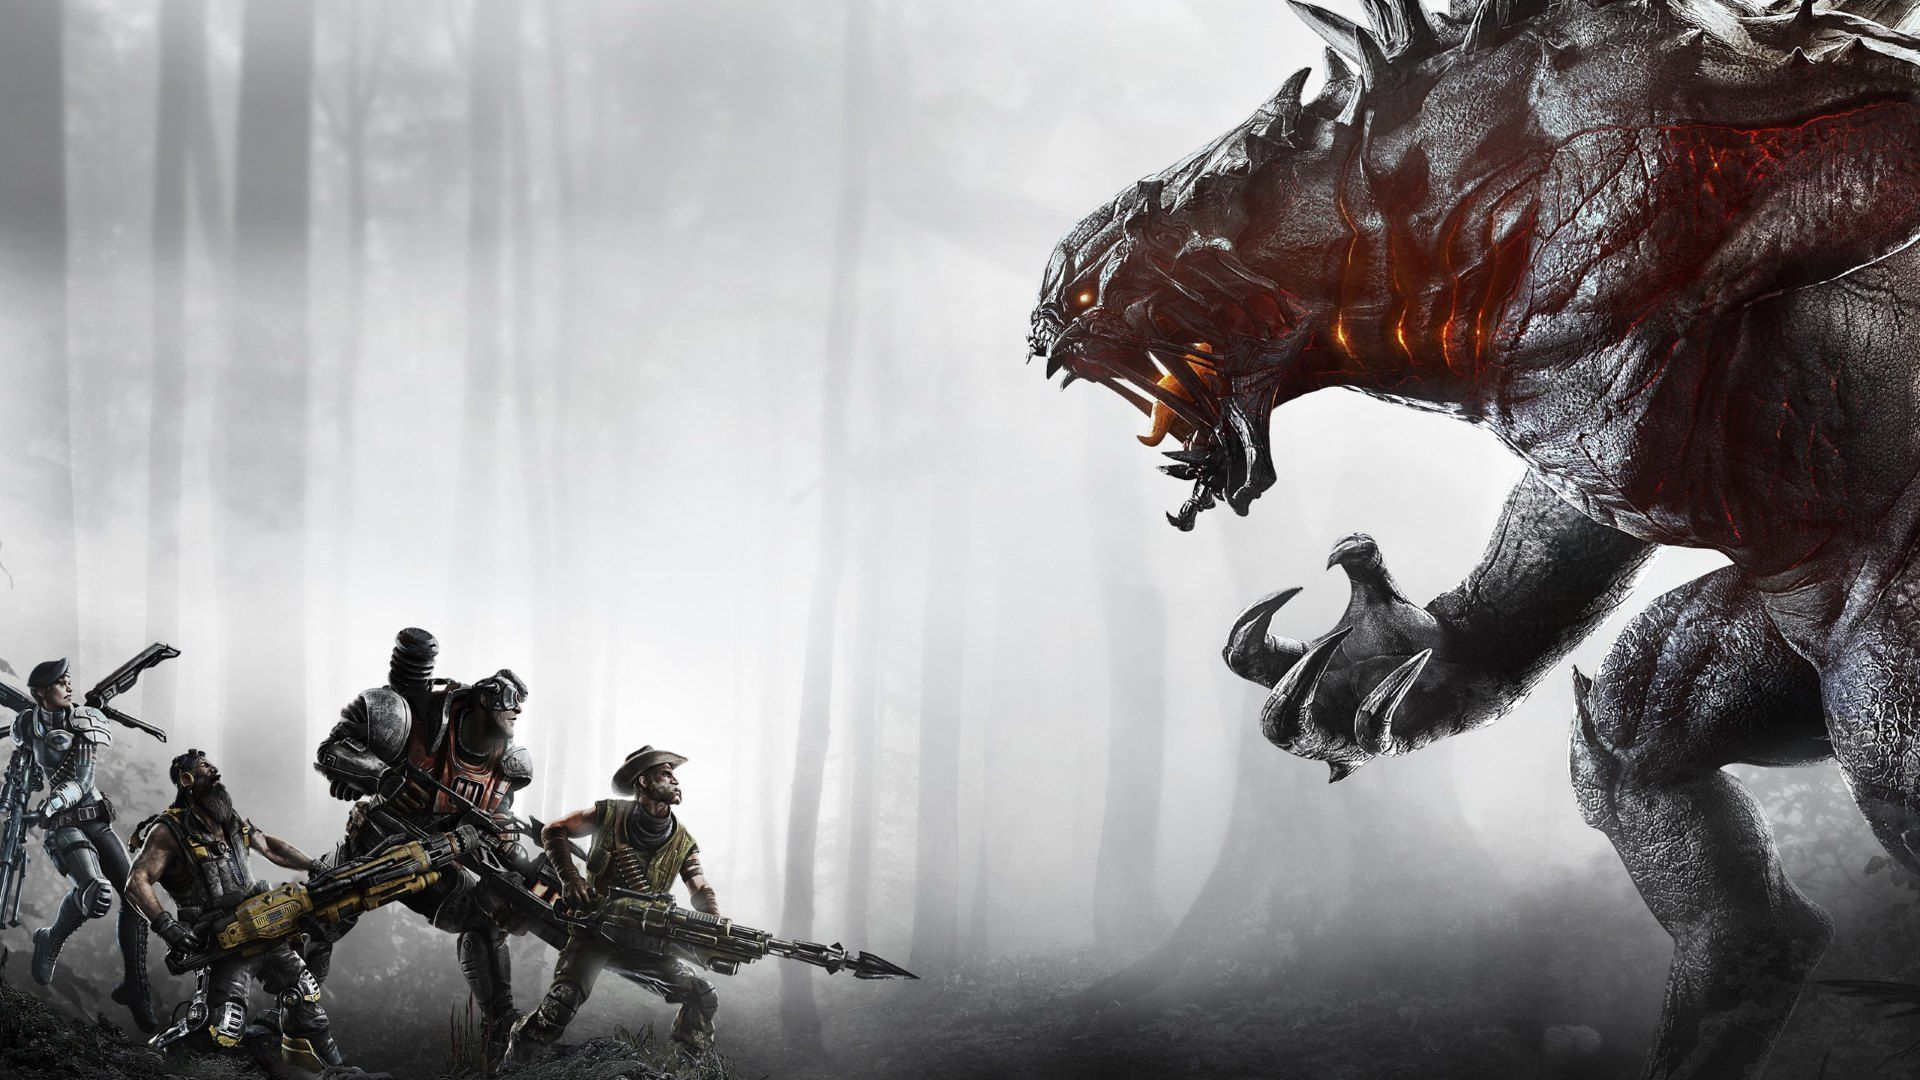 Game Evolve HD Wallpapers. 4K Wallpapers IMAGENES